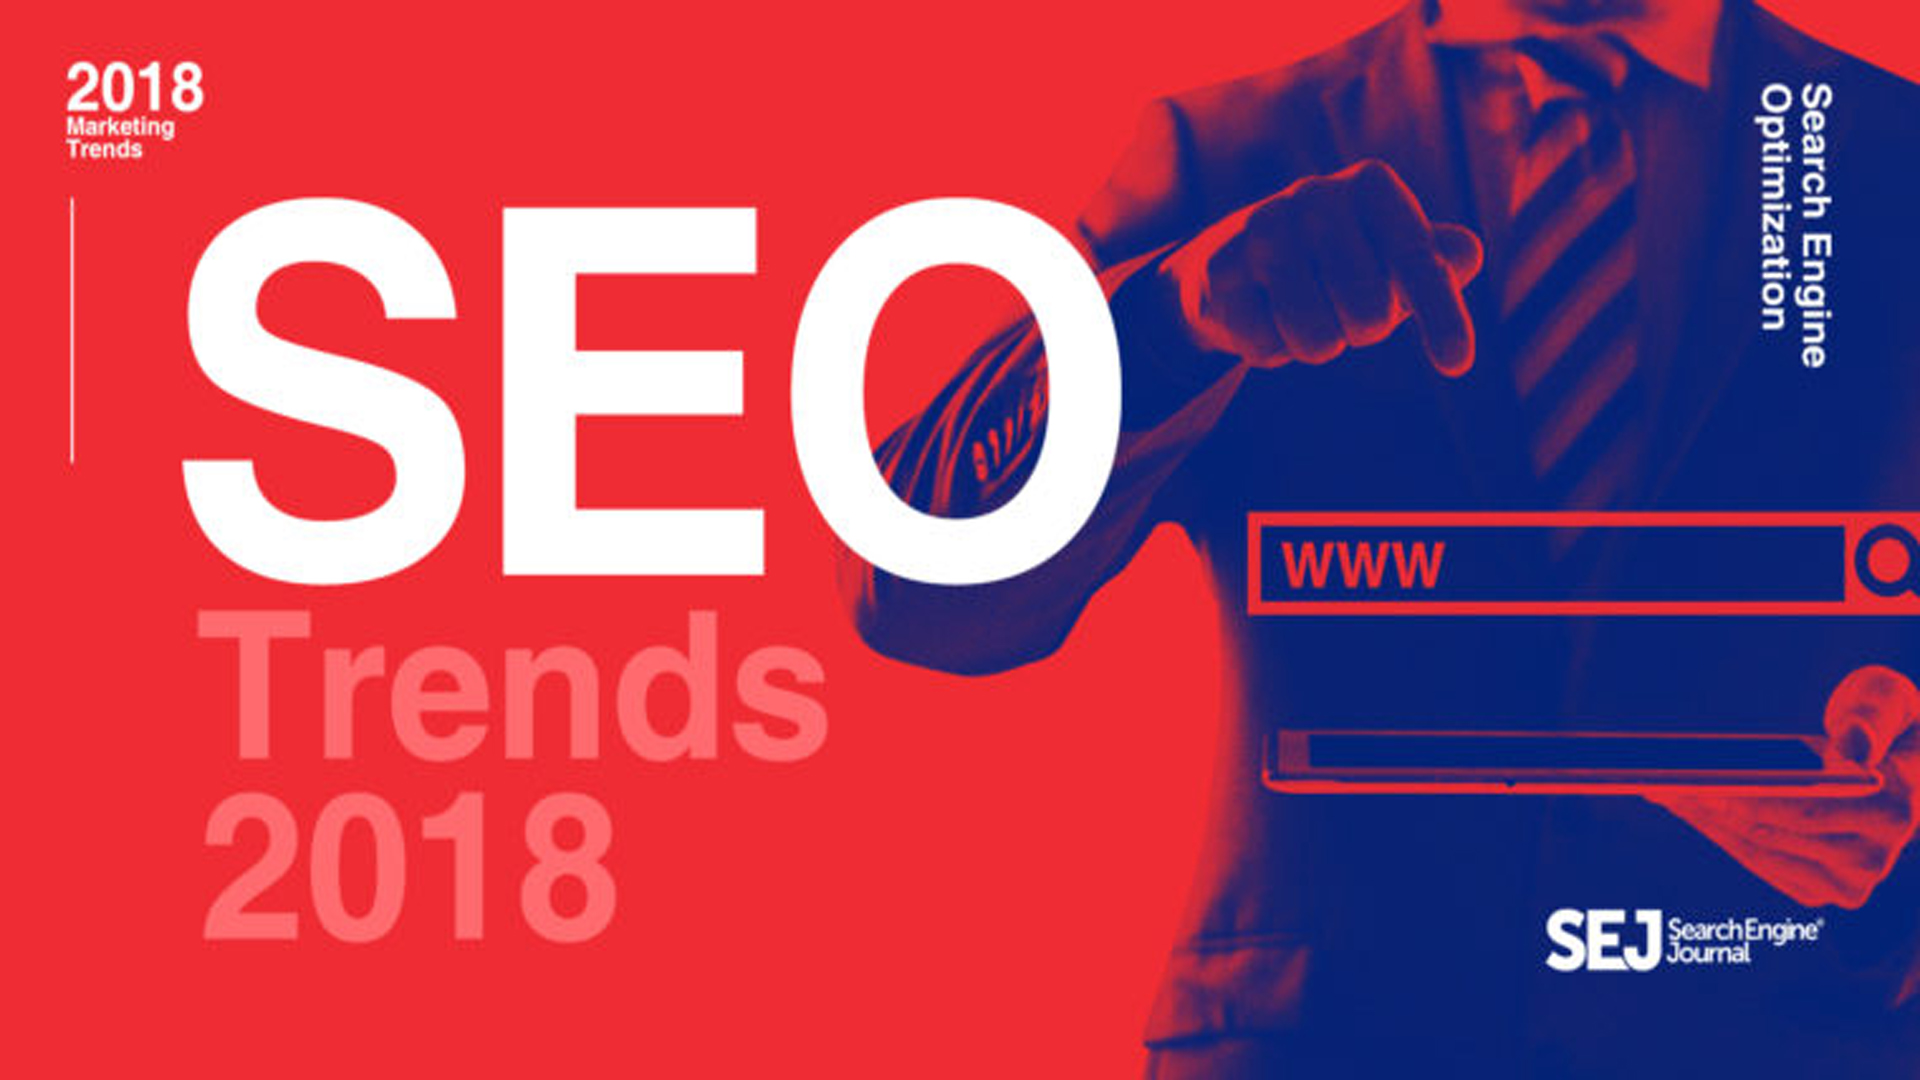 12 Most Effective SEO Strategies For 2018